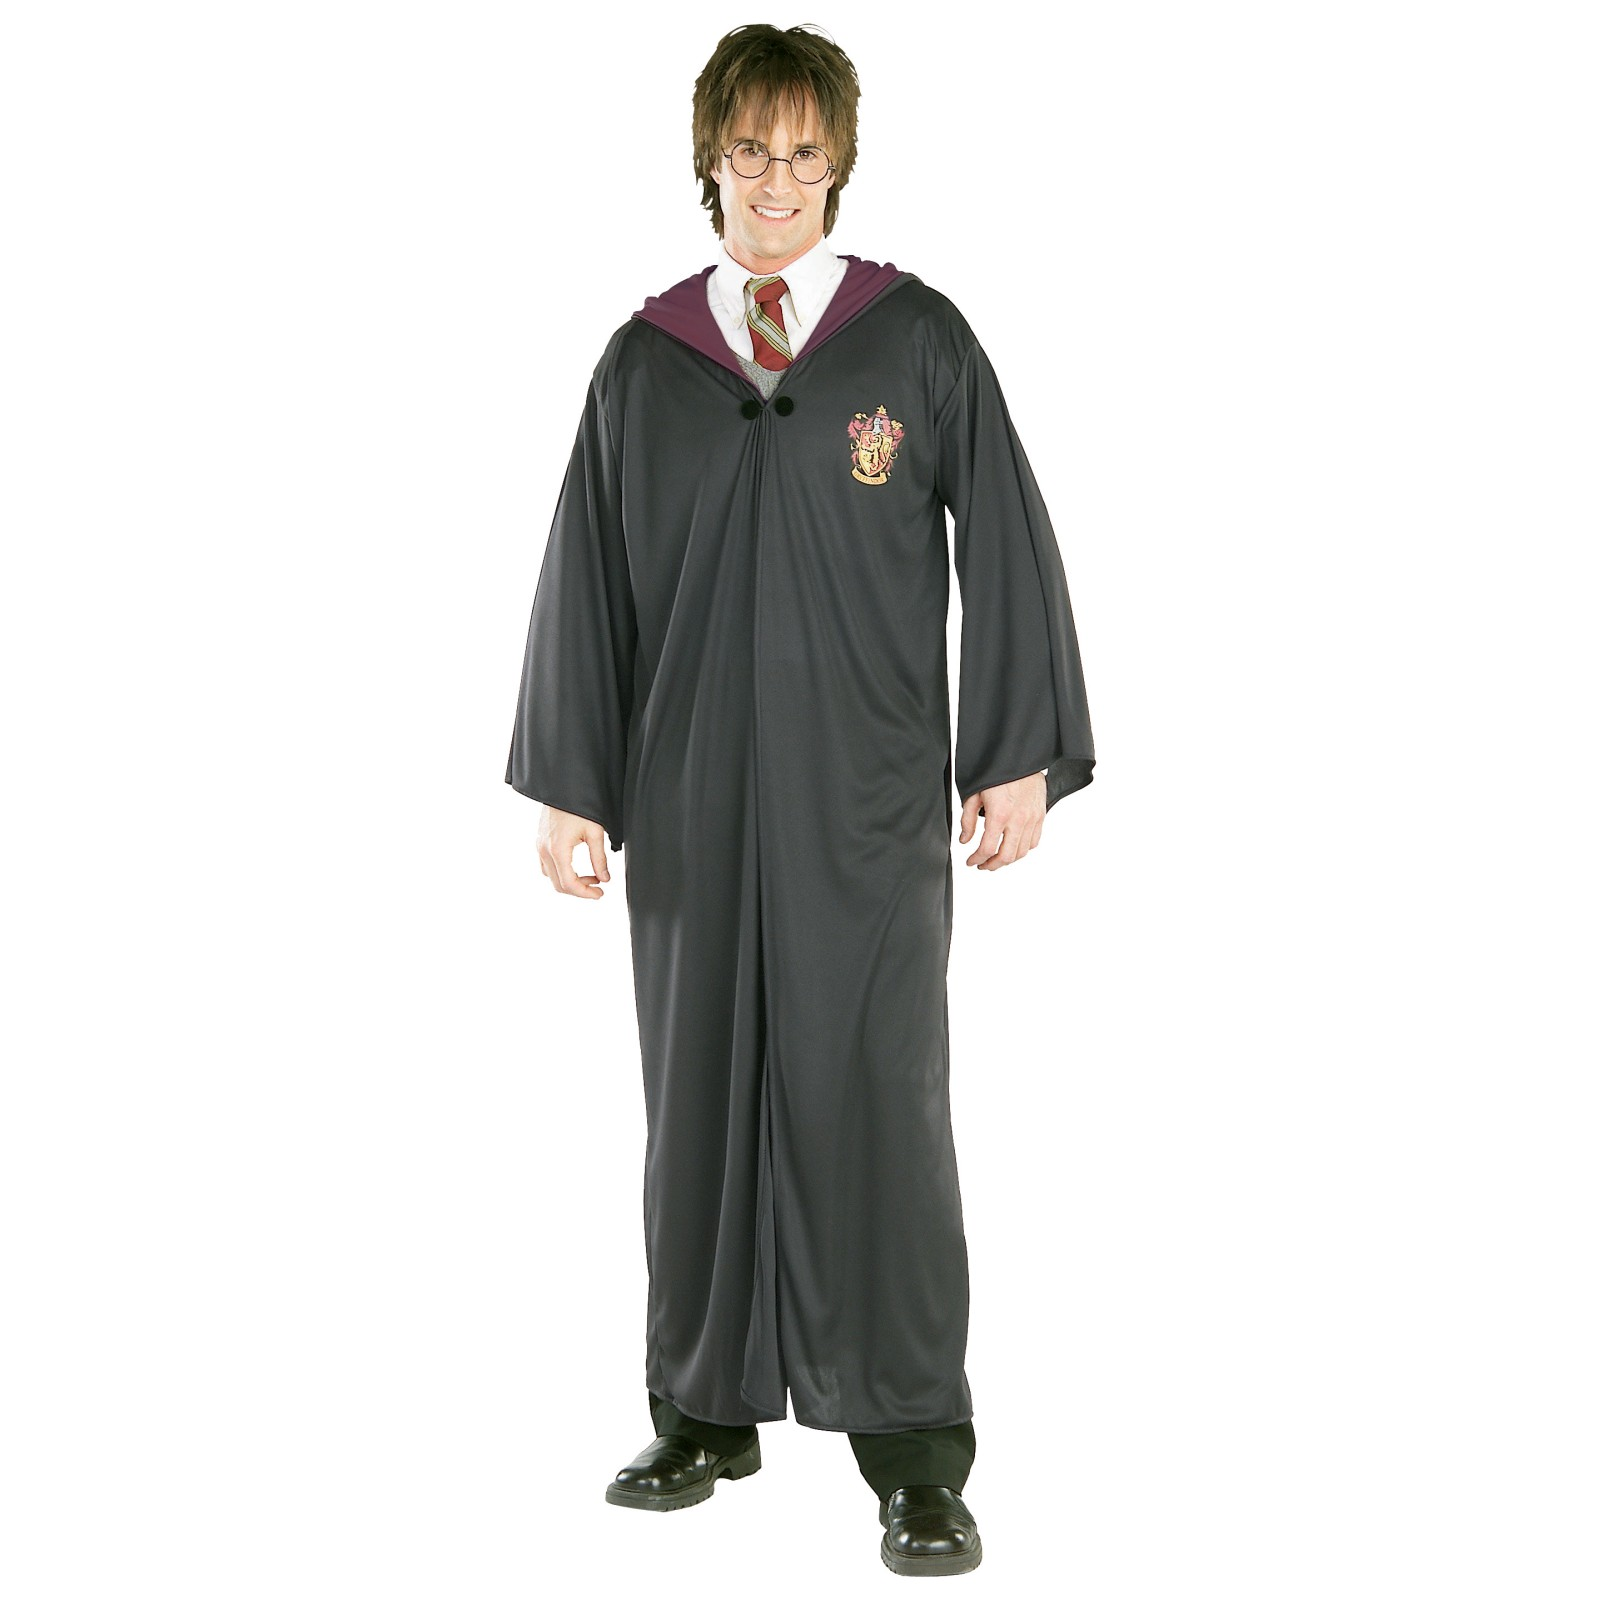 Acomes Harry Potter Costume Official Robe Harry Potter Costumes